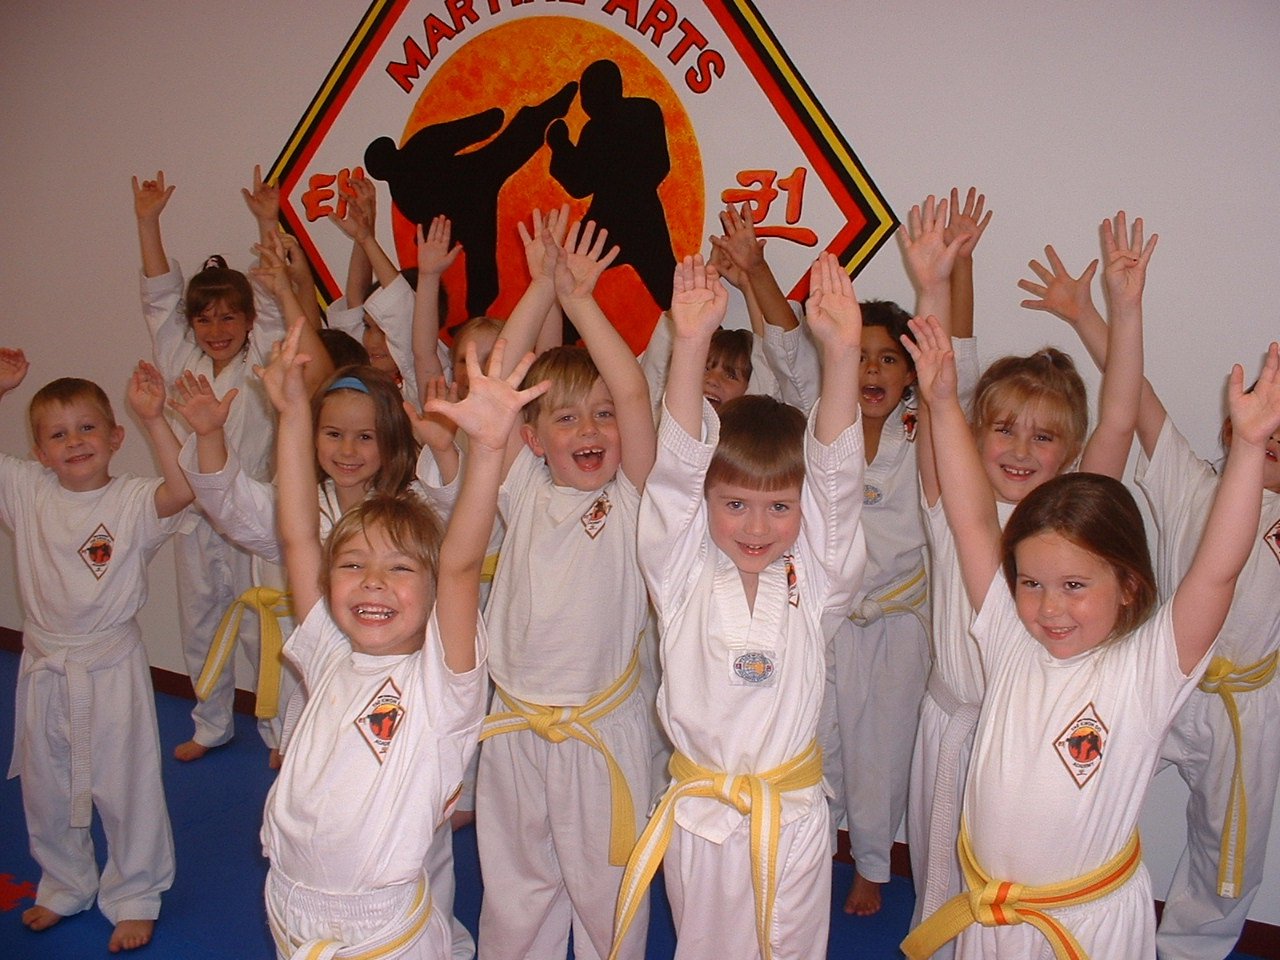 pre-school taekwondo in Exeter, NH